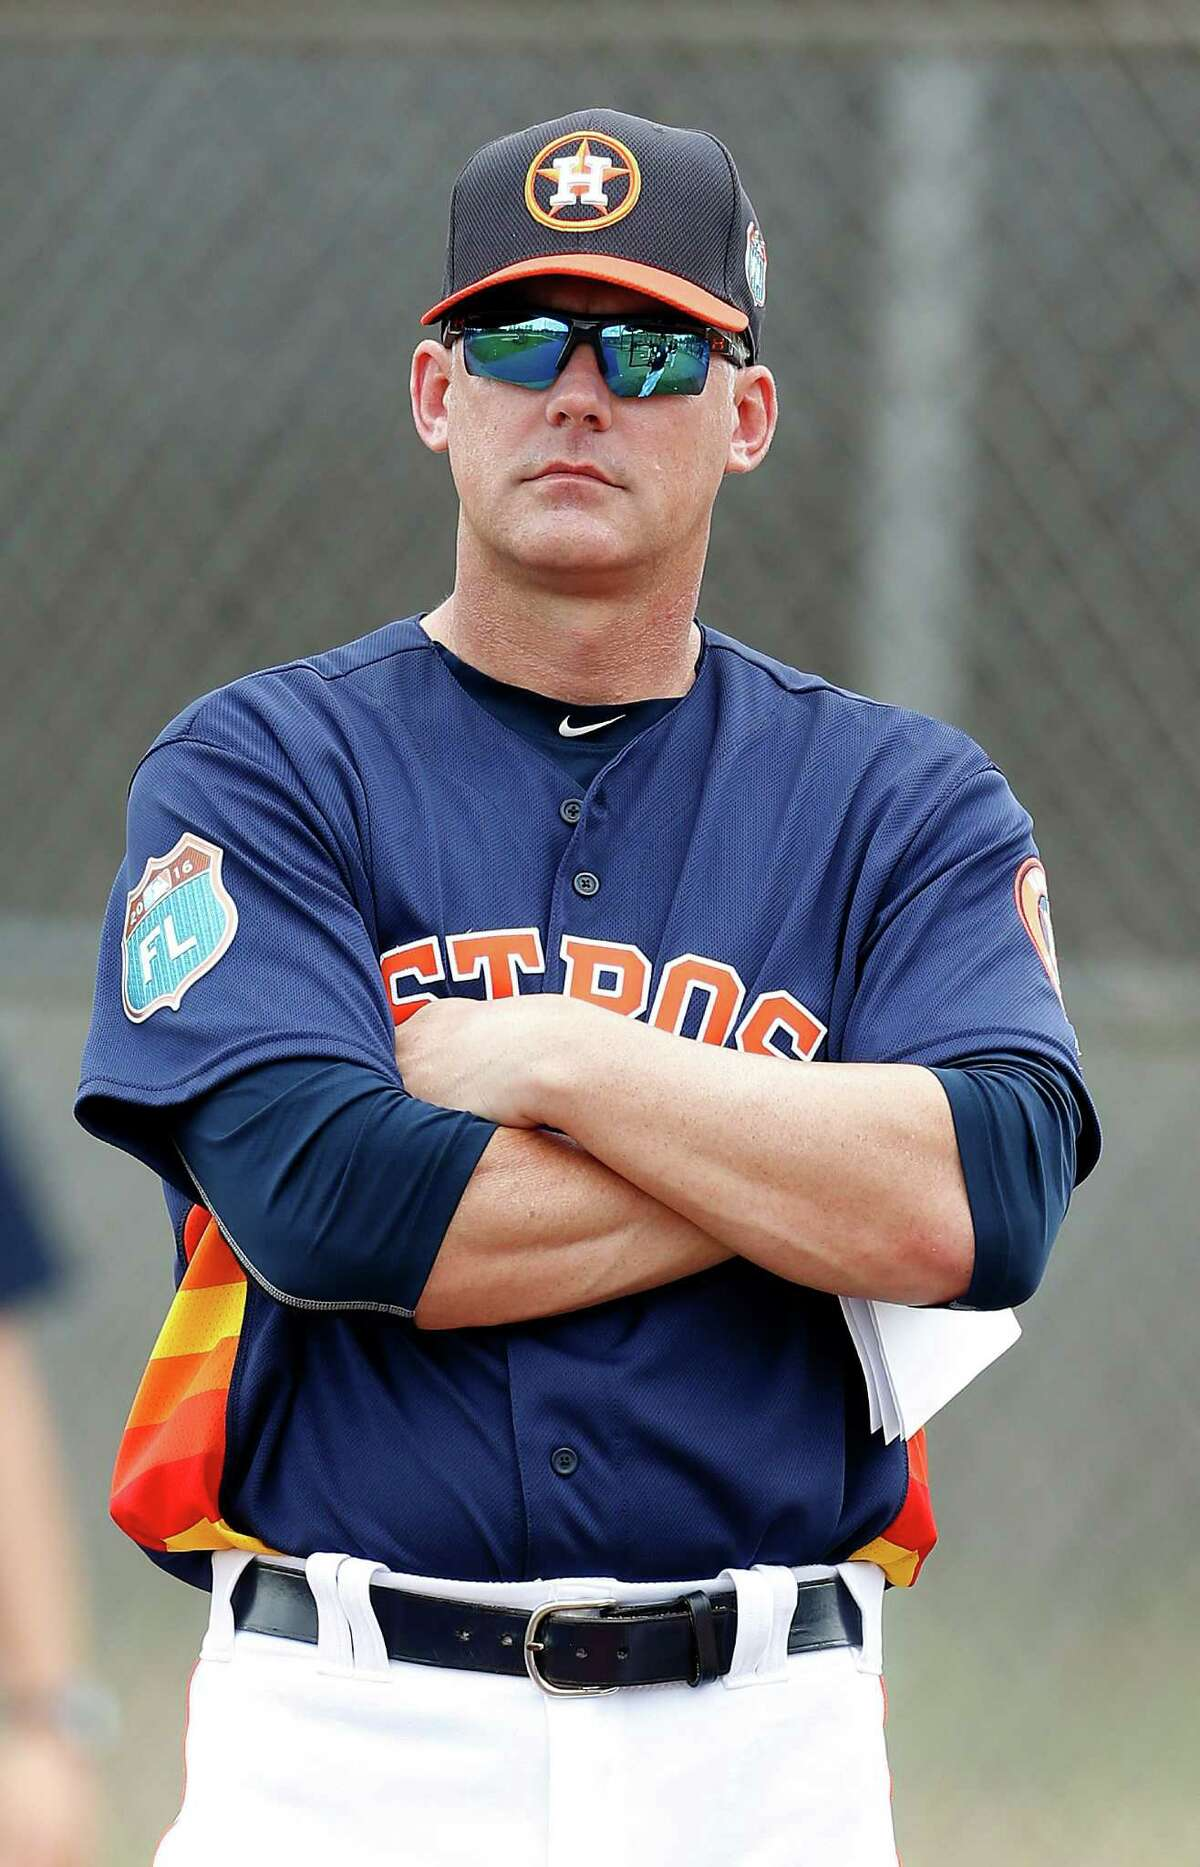 Houston Astros manager A.J. Hinch during the first full-squad workouts at the Astros spring training in Kissimmee, Florida, Tuesday, Feb. 23, 2016.